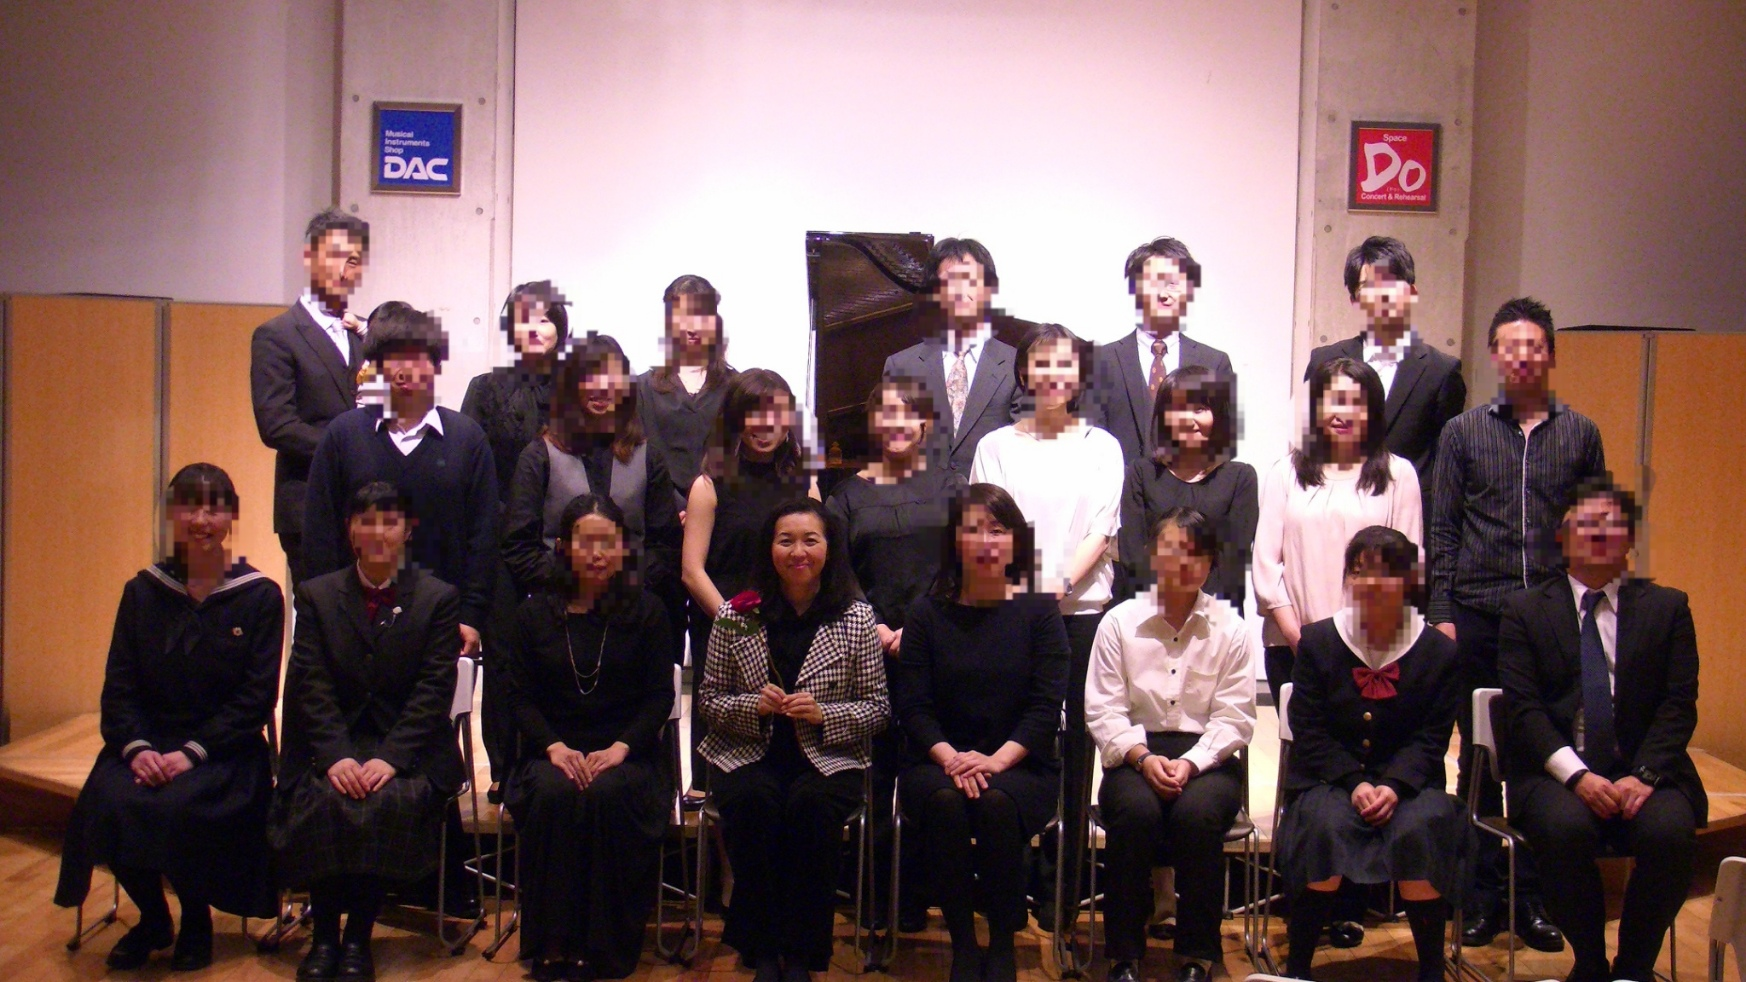 The 19th students' concert